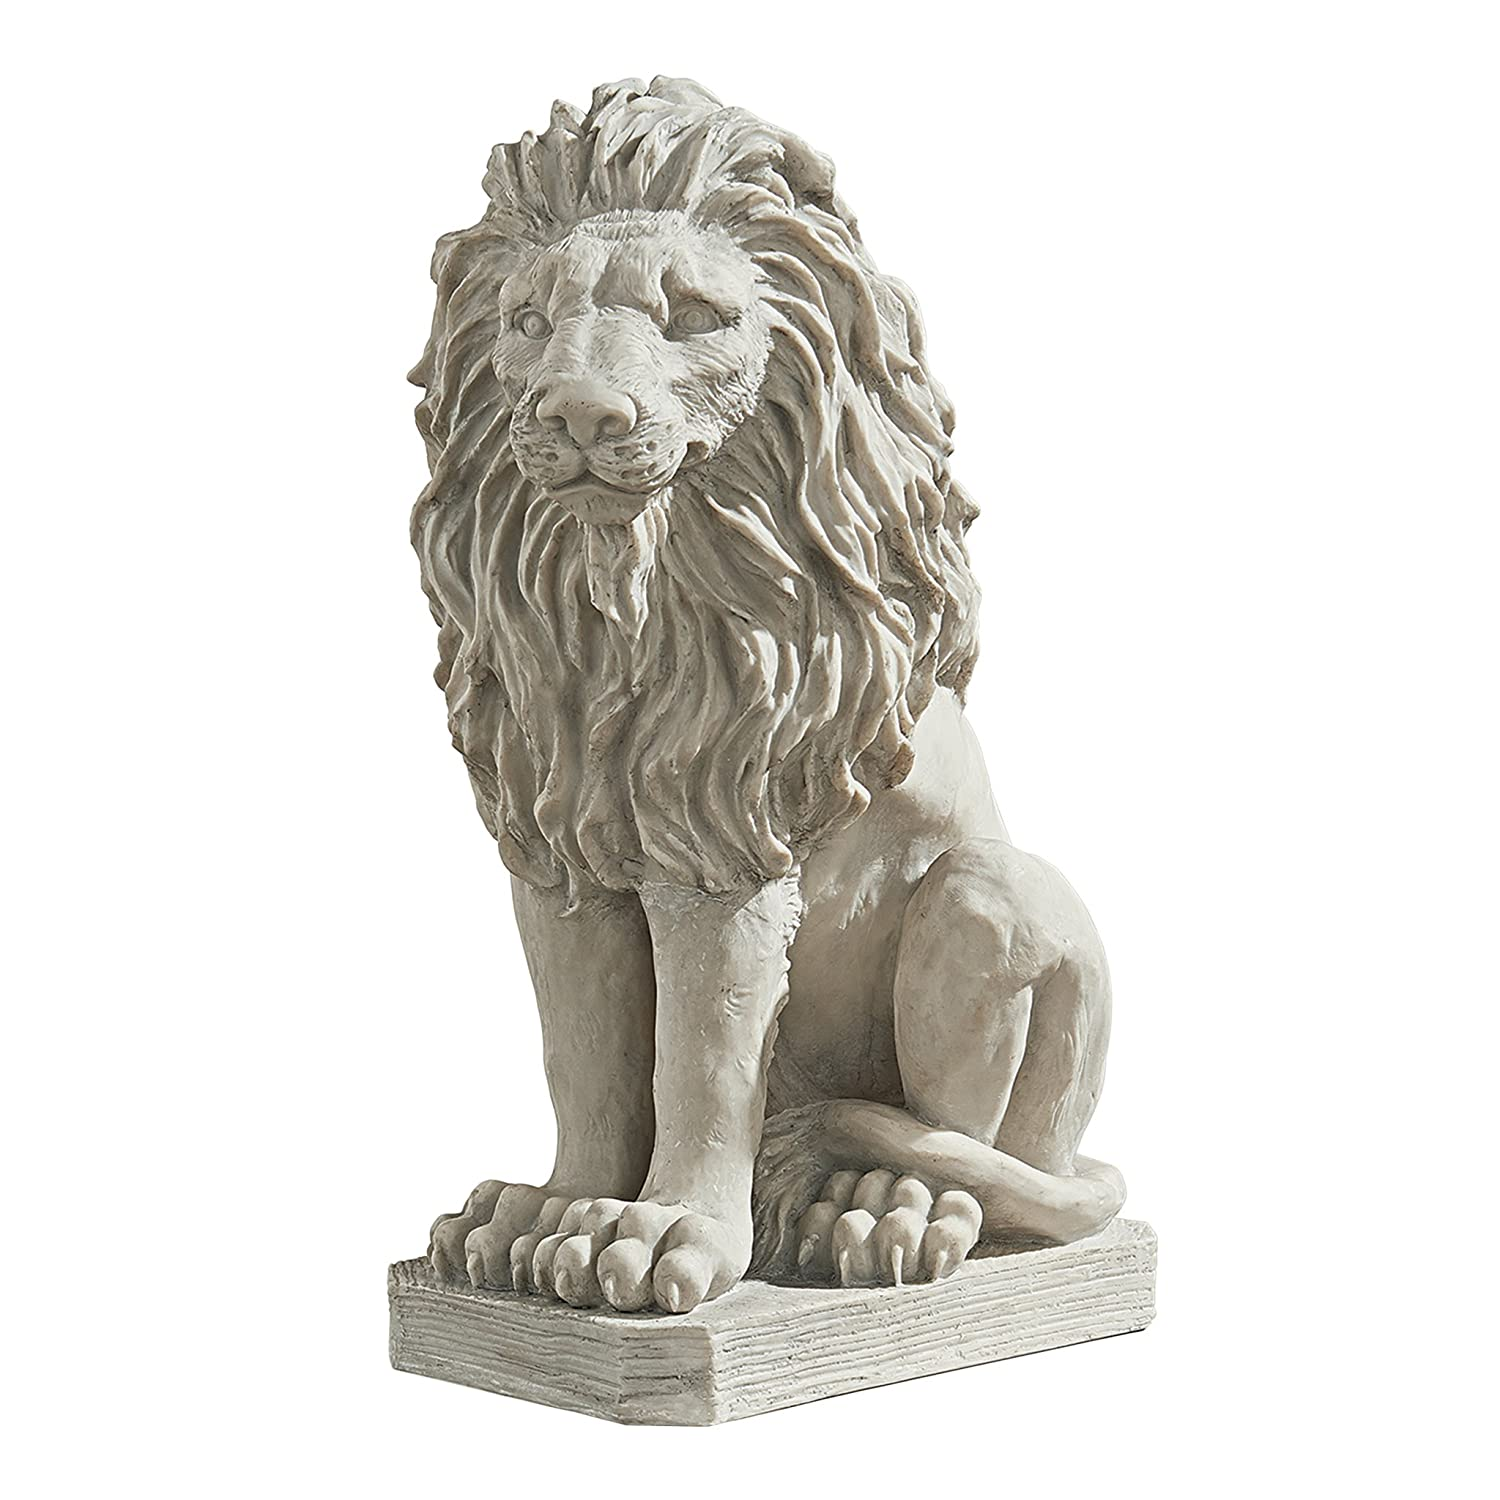 Design Toscano Mansfield Manor Lion Sentinel Animal Statue, 21 Inch, Polyresin, Antique Stone